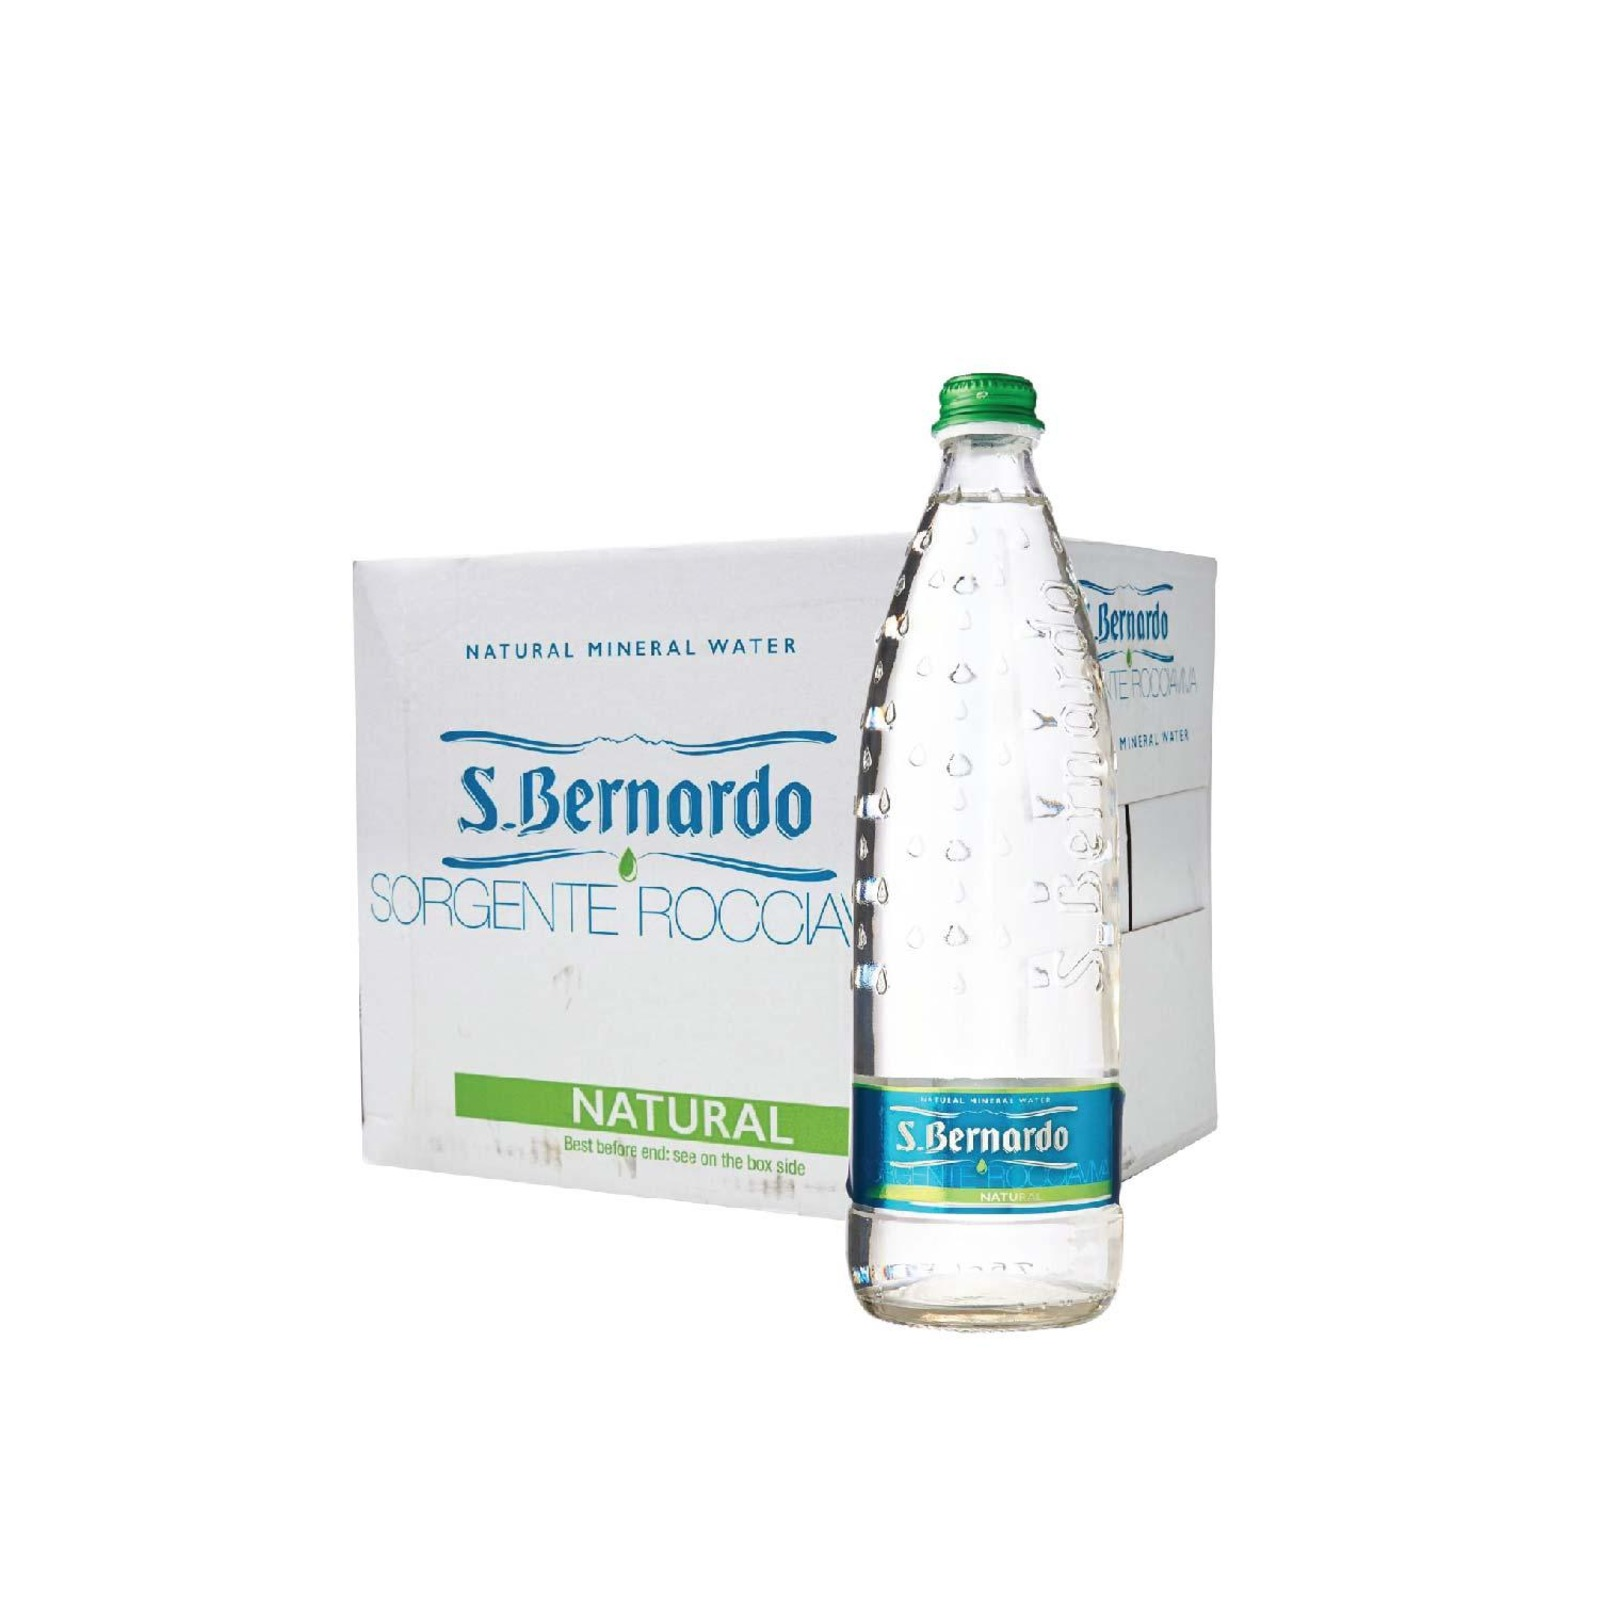 San Benedetto Natural Mineral Water Glass - Case